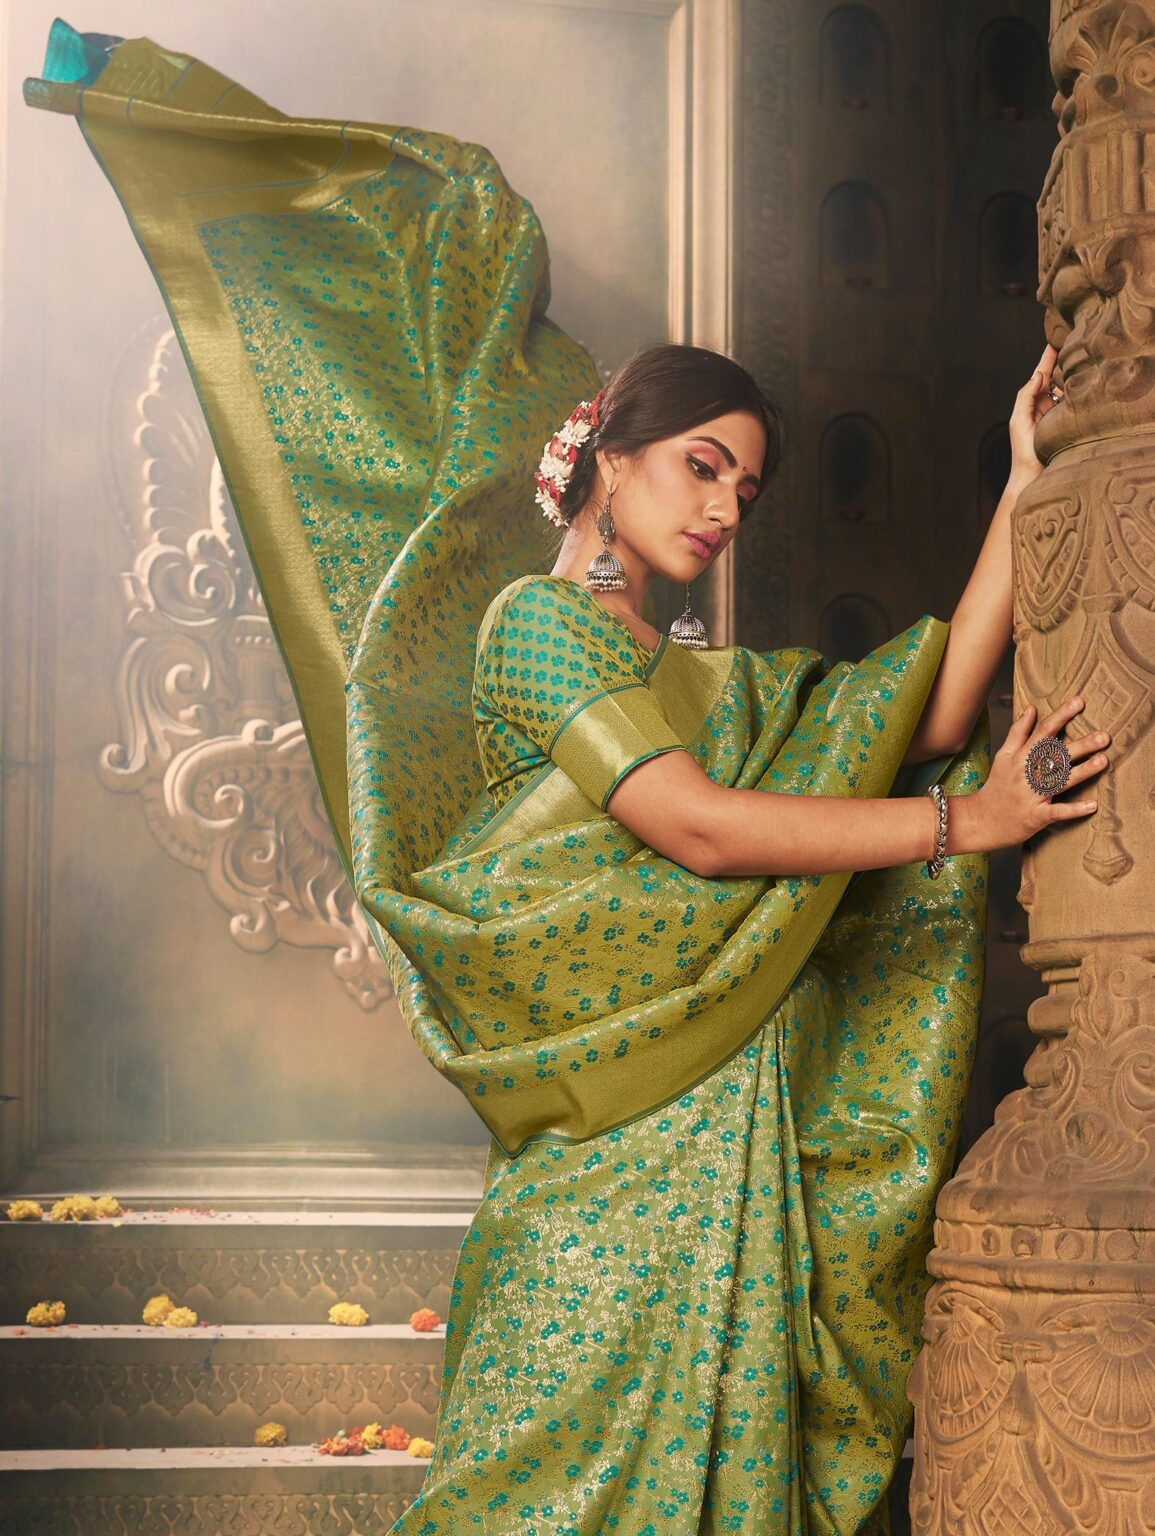 Pista Green Banarasi Silk Floral Woven Saree with Zari Gold Border and Pallu